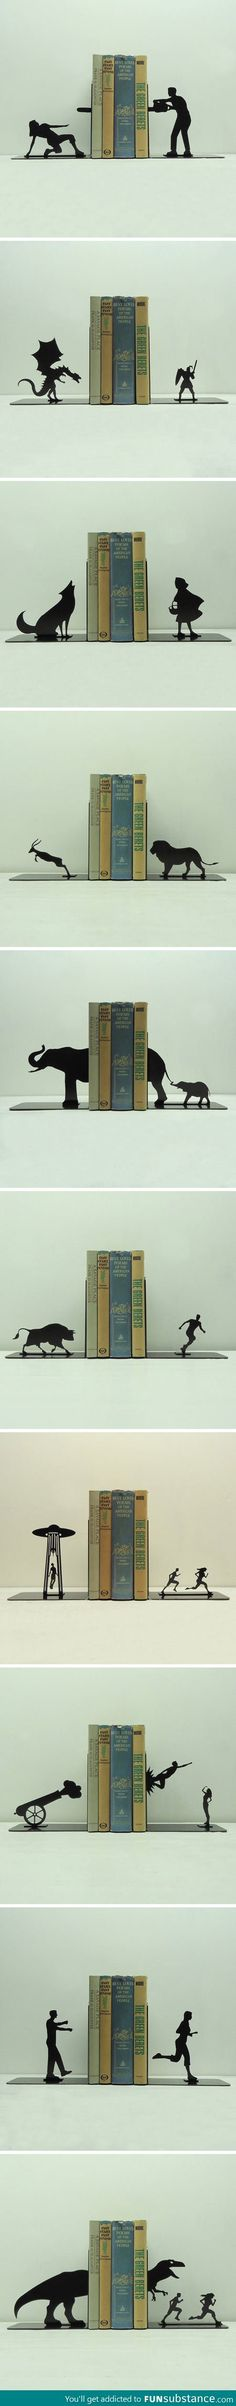 Some Creative Bookends